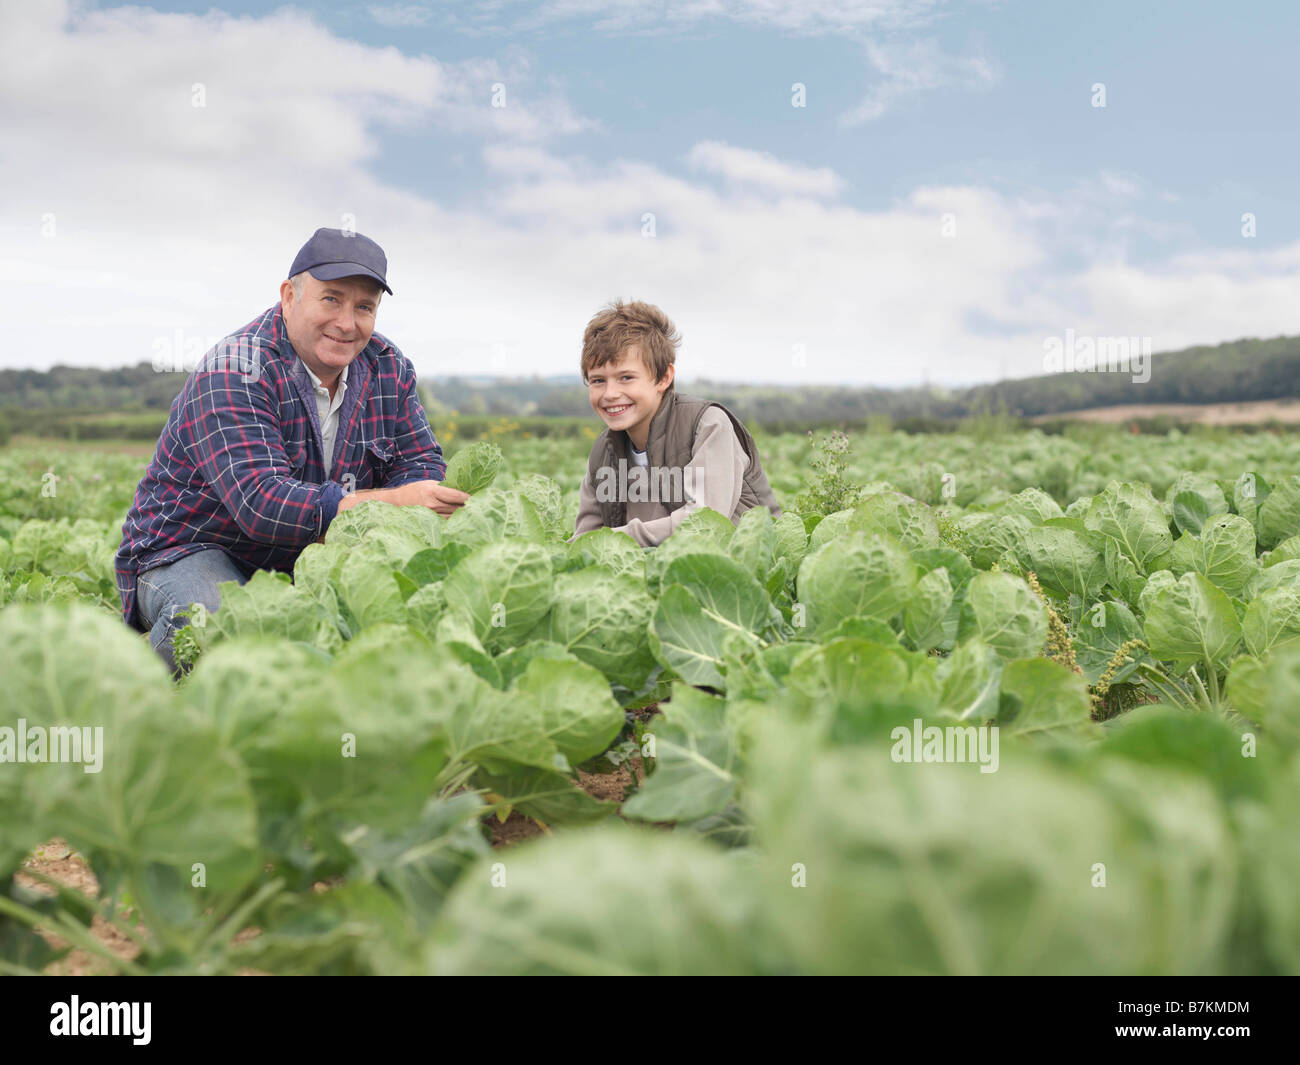 Farmer And Son In Crop Field - Stock Image